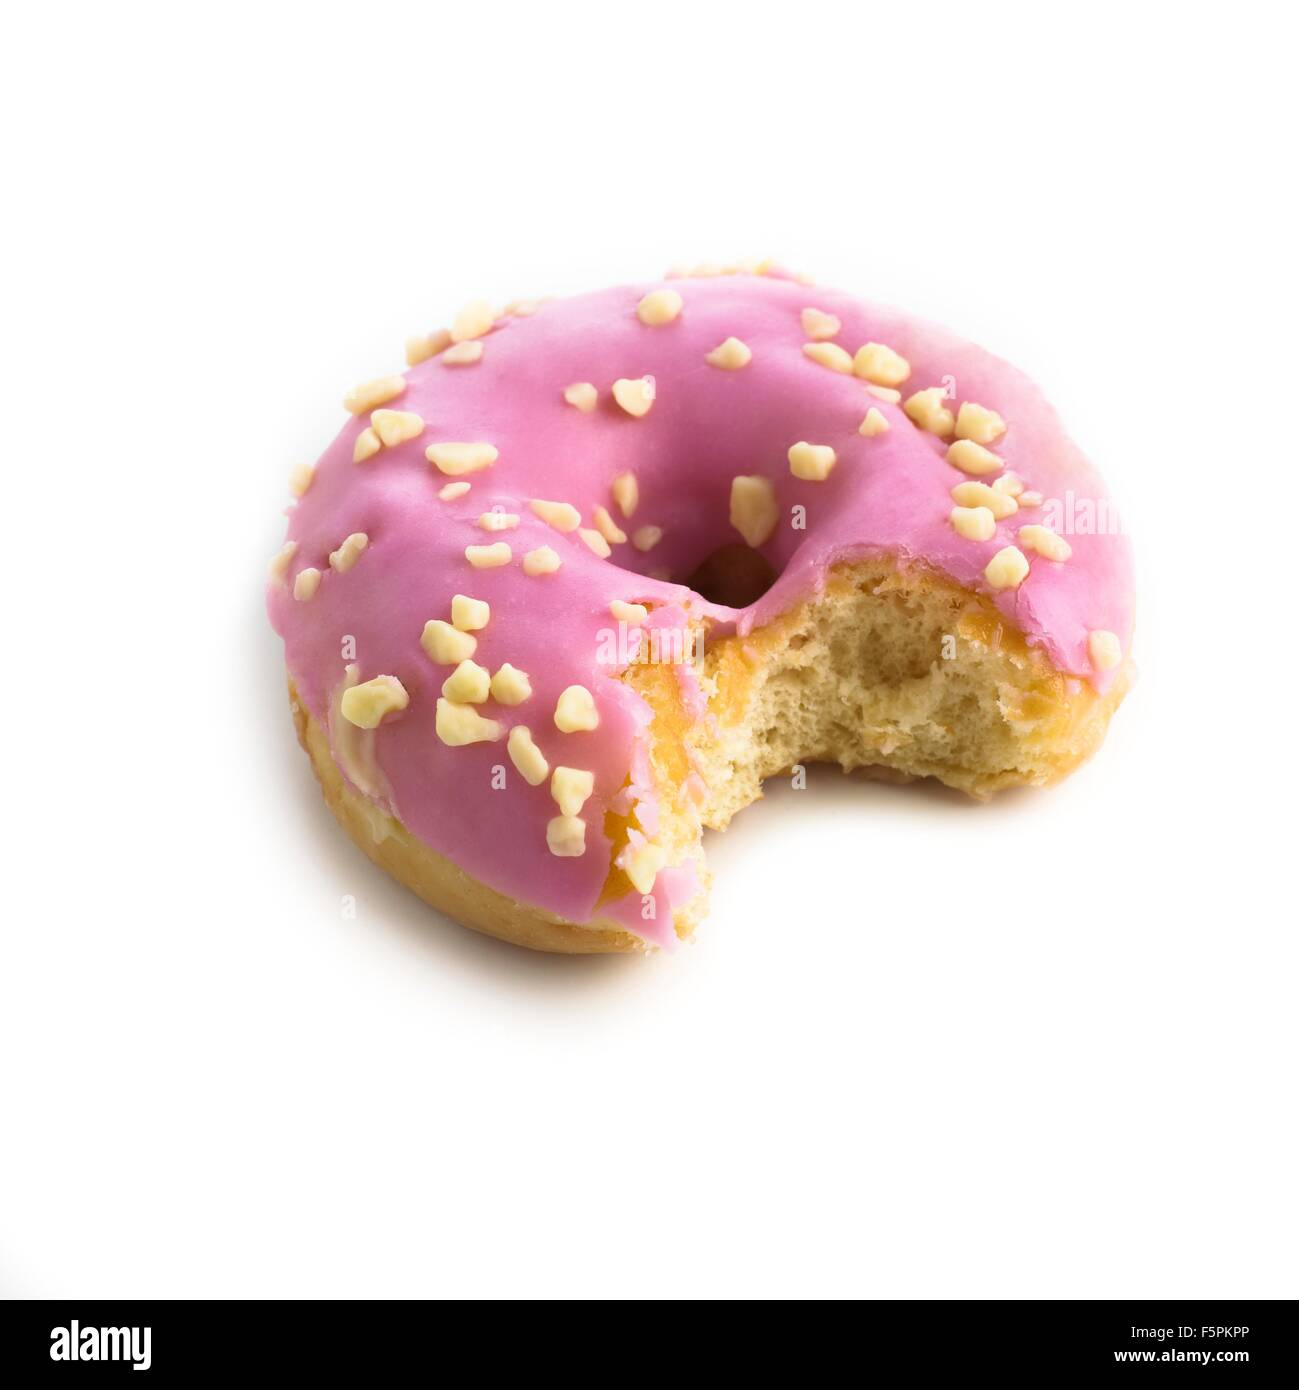 Pink doughnut with a missing bite against a white background. - Stock Image